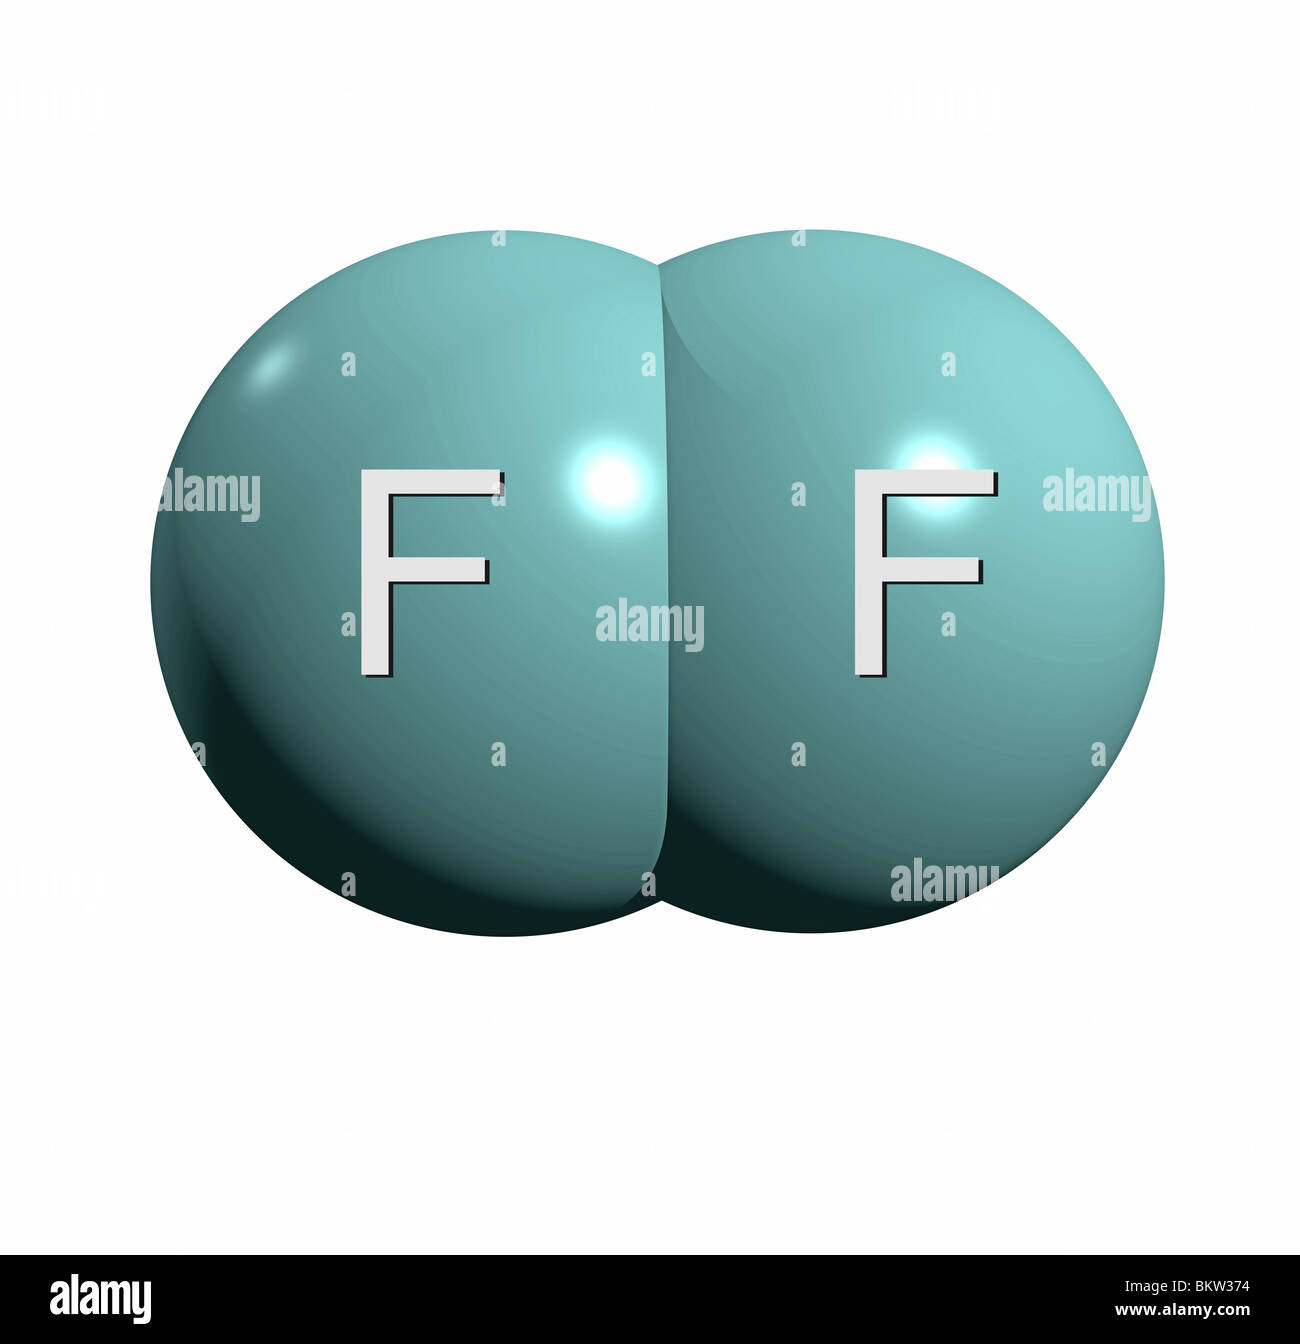 Fluorine Atom Stock Photos Fluorine Atom Stock Images Alamy